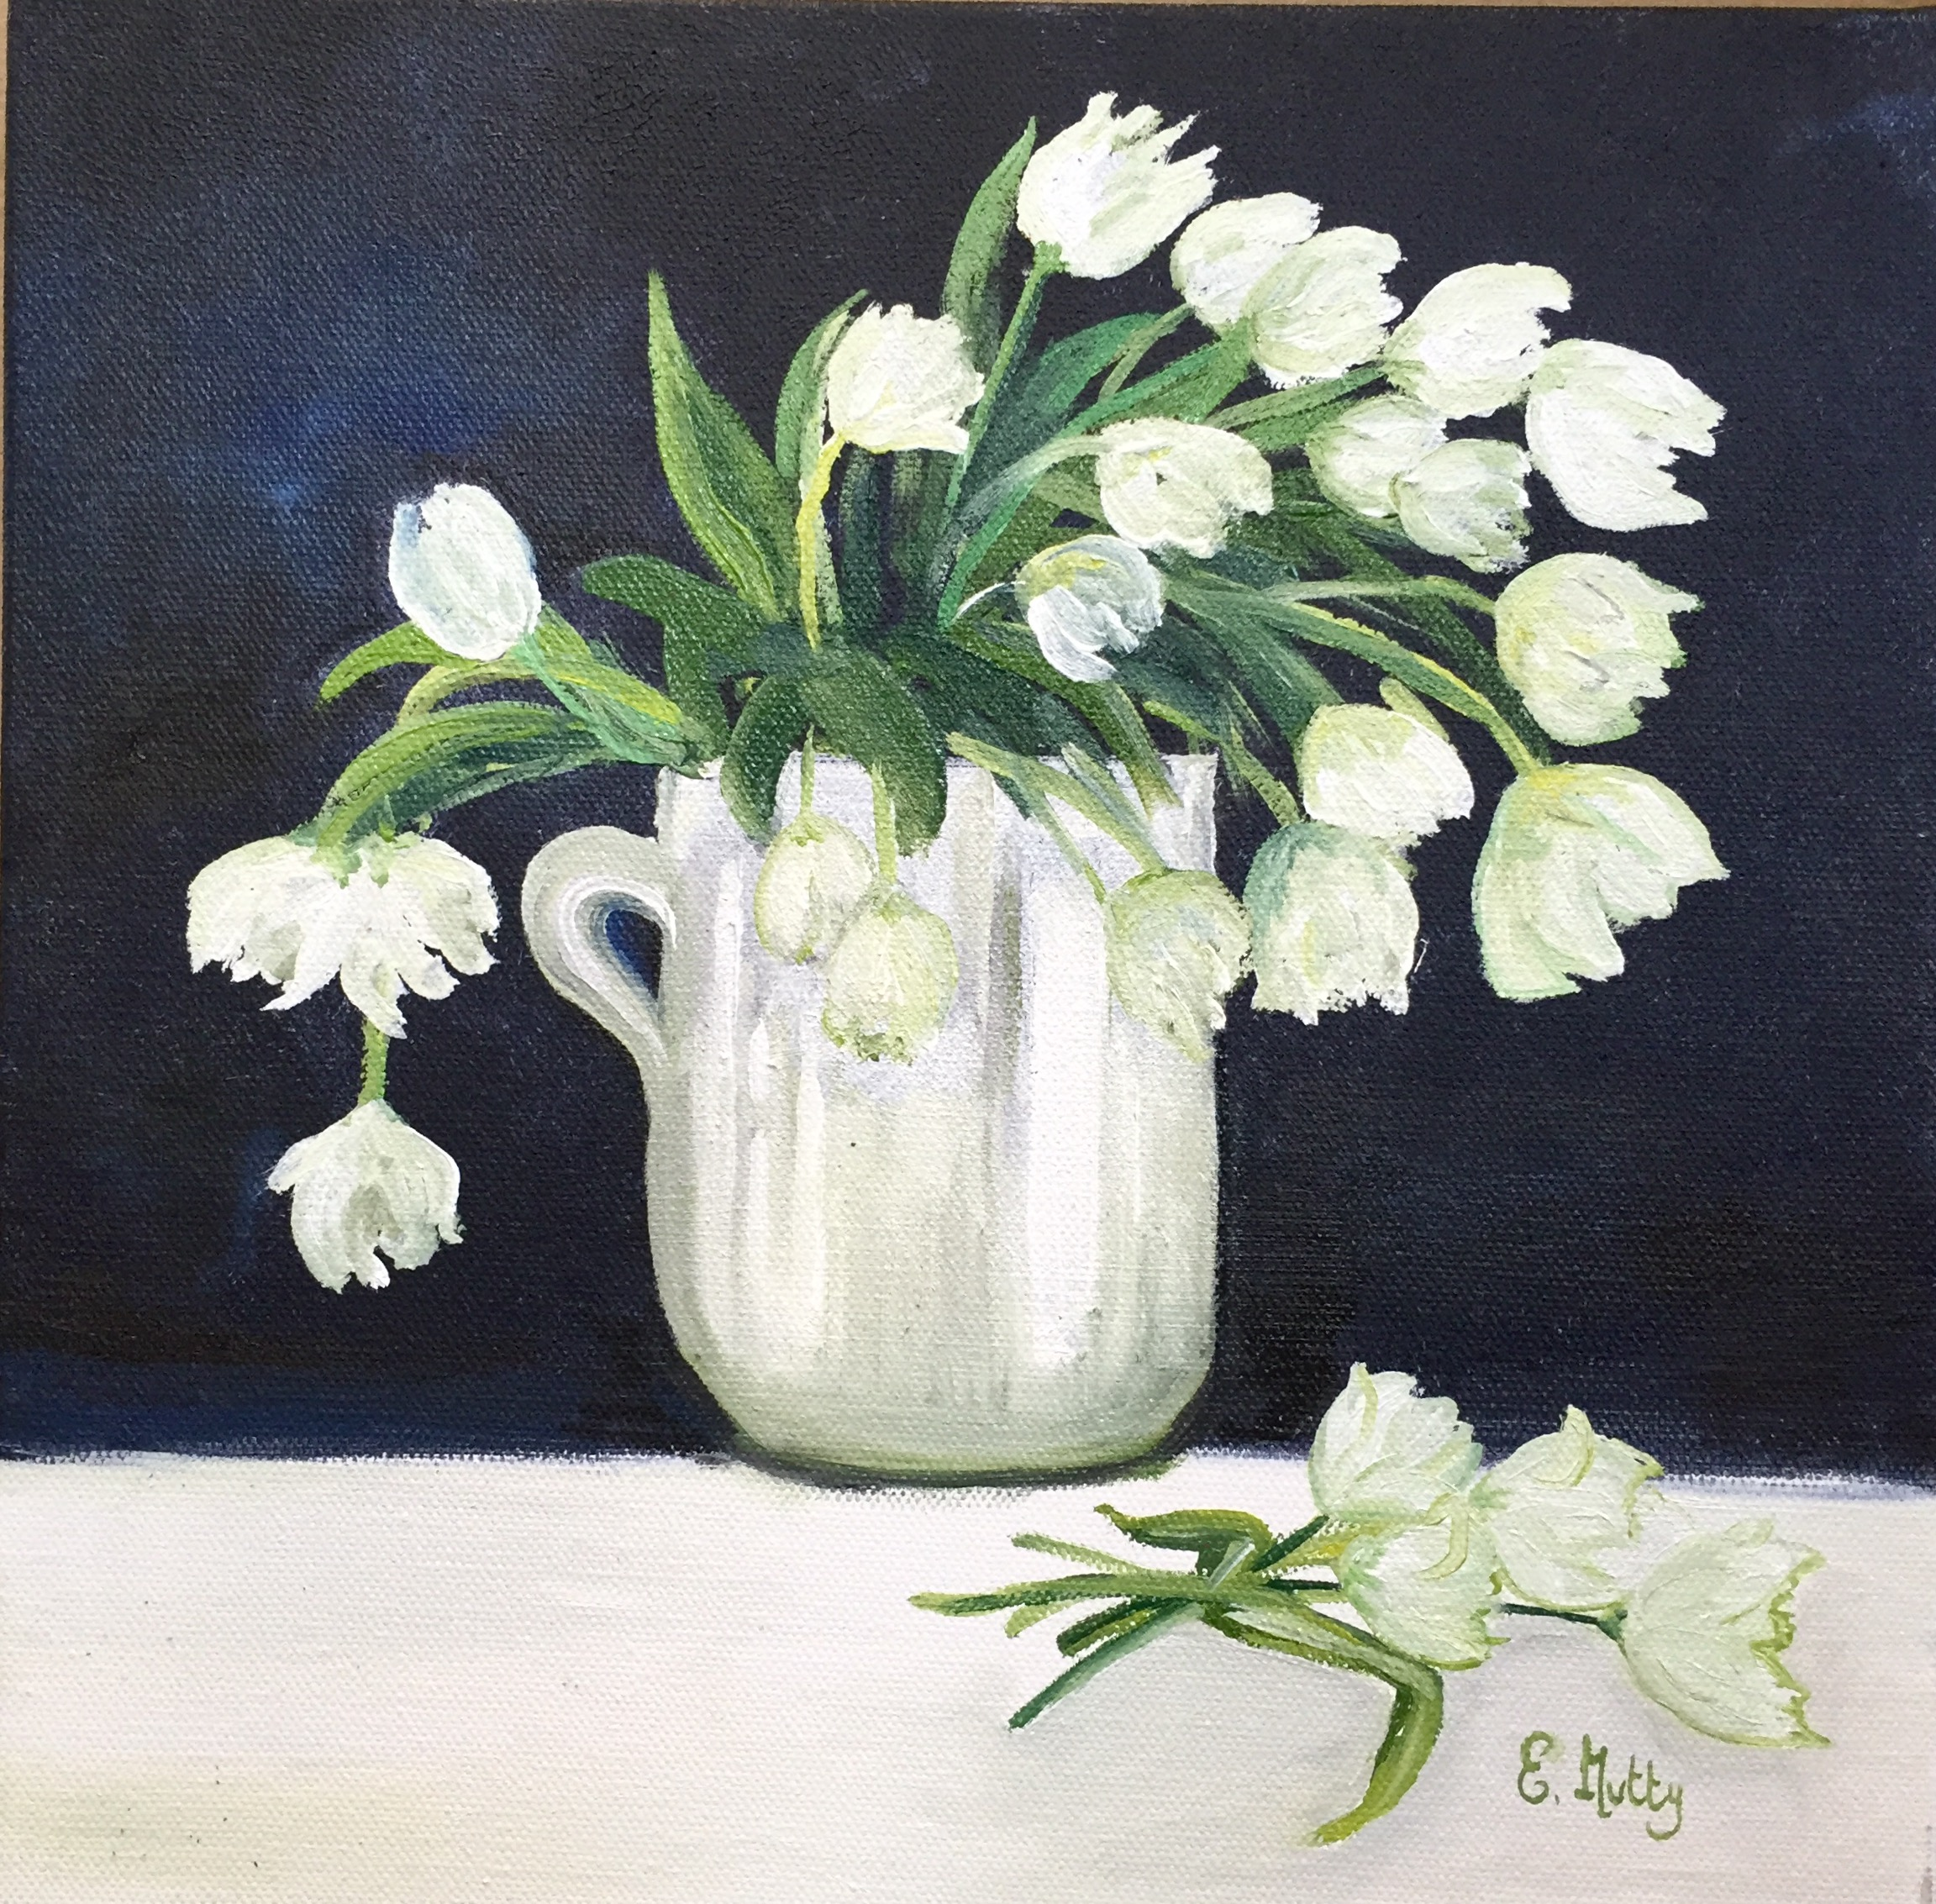 White Tulips by Elisabetta Mutty at the Saffron Walden Gallery